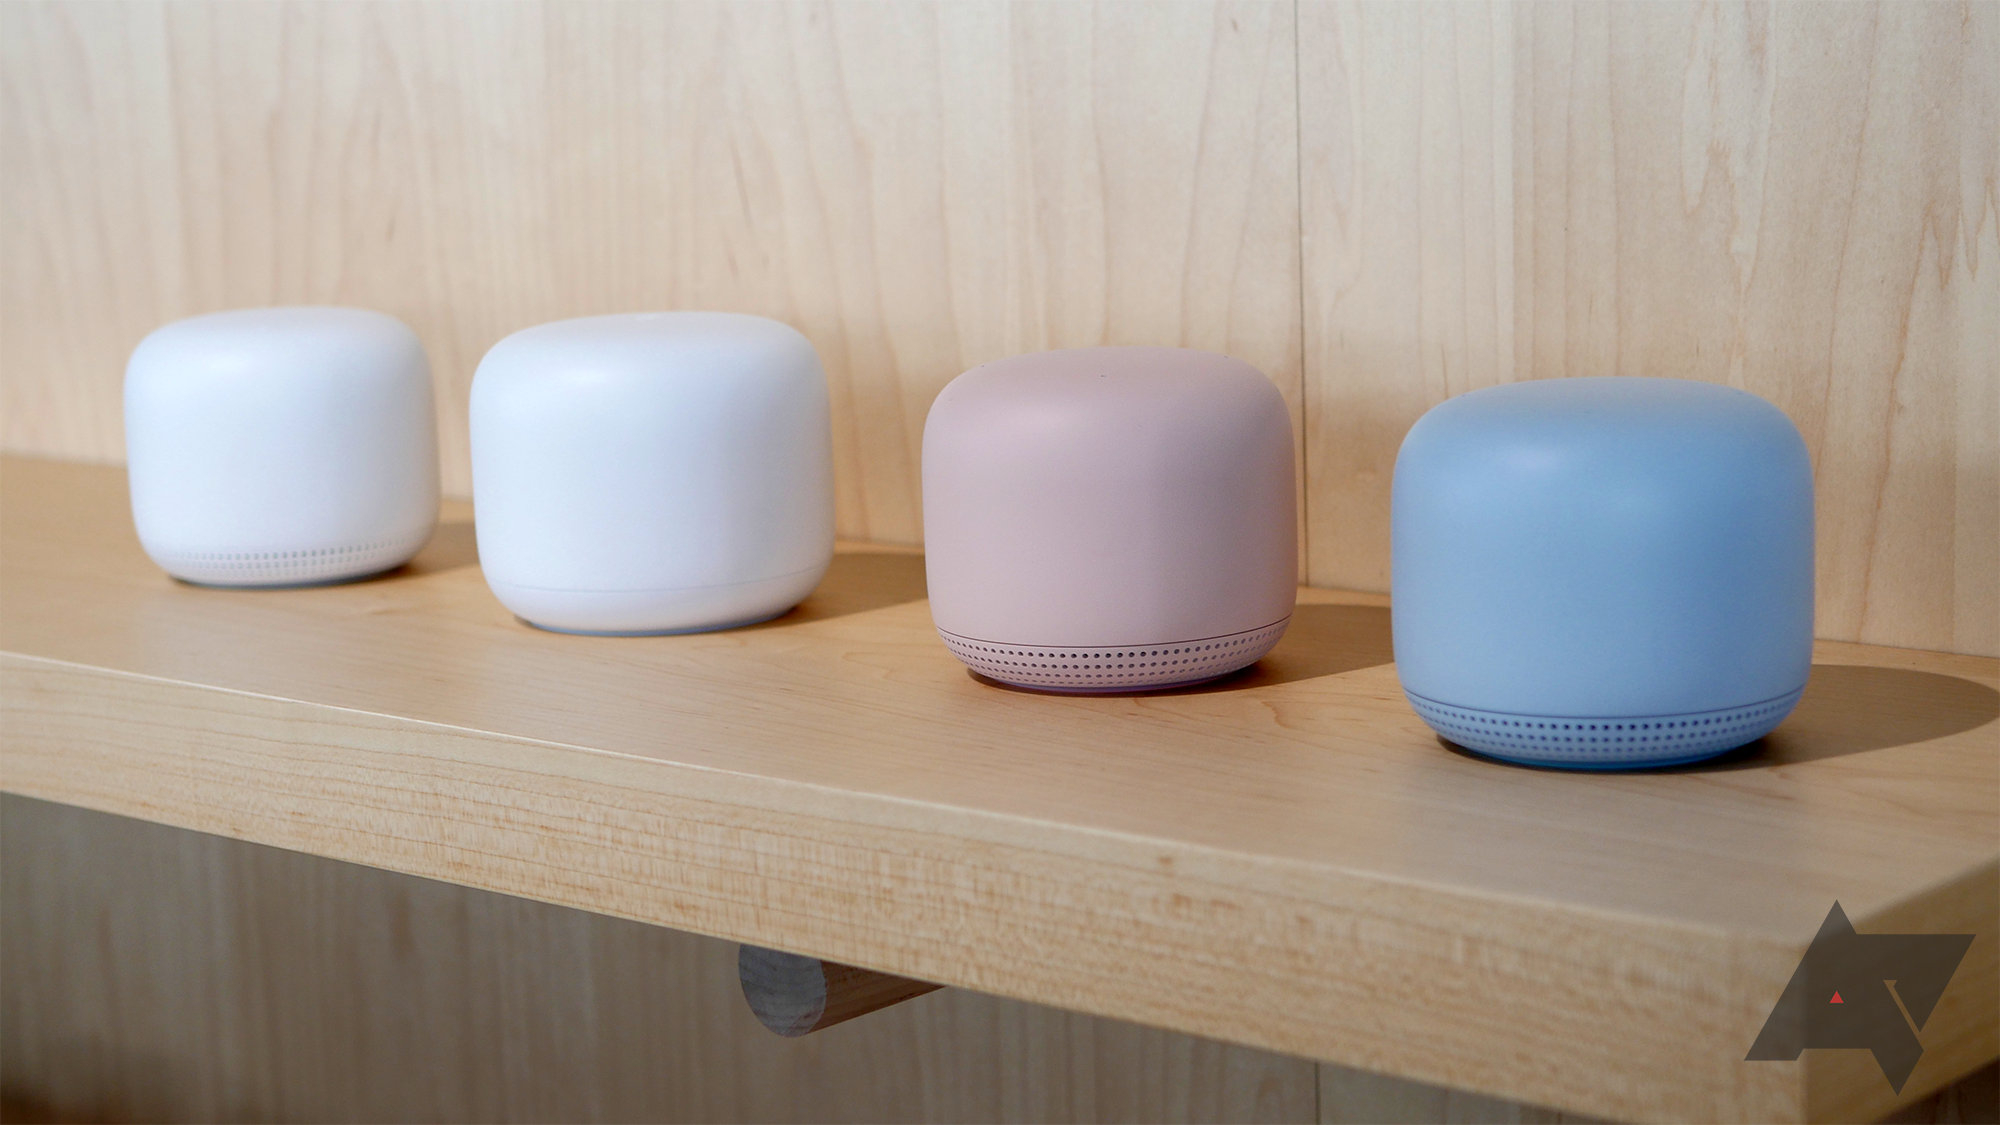 [Update: Stand-alone pricing, availability] Google introduces new Nest Wifi mesh router with built-in Assistant speakers